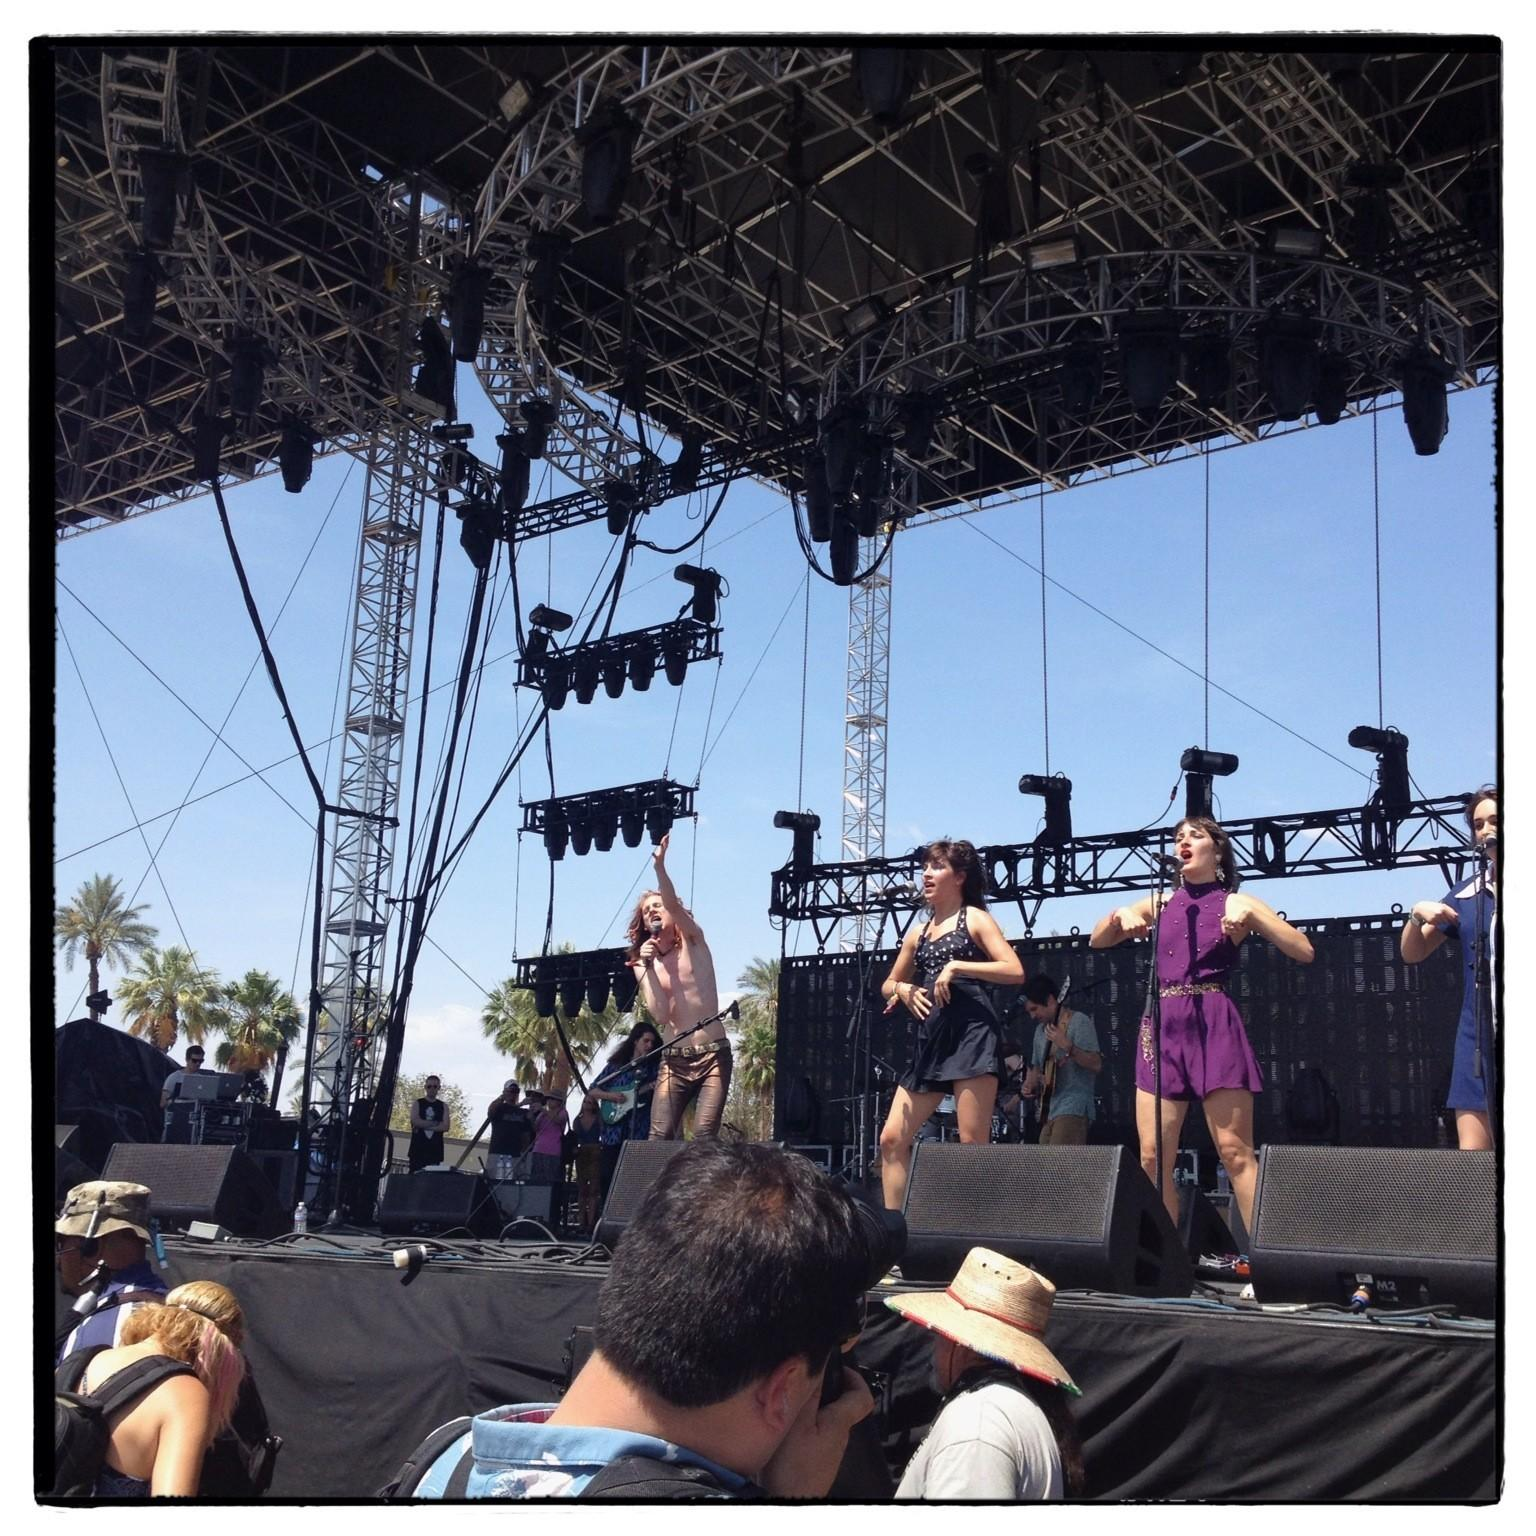 Foxygen singer Sam France grabbed your attention on the Outdoor Stage at the Coachella festival Saturday.